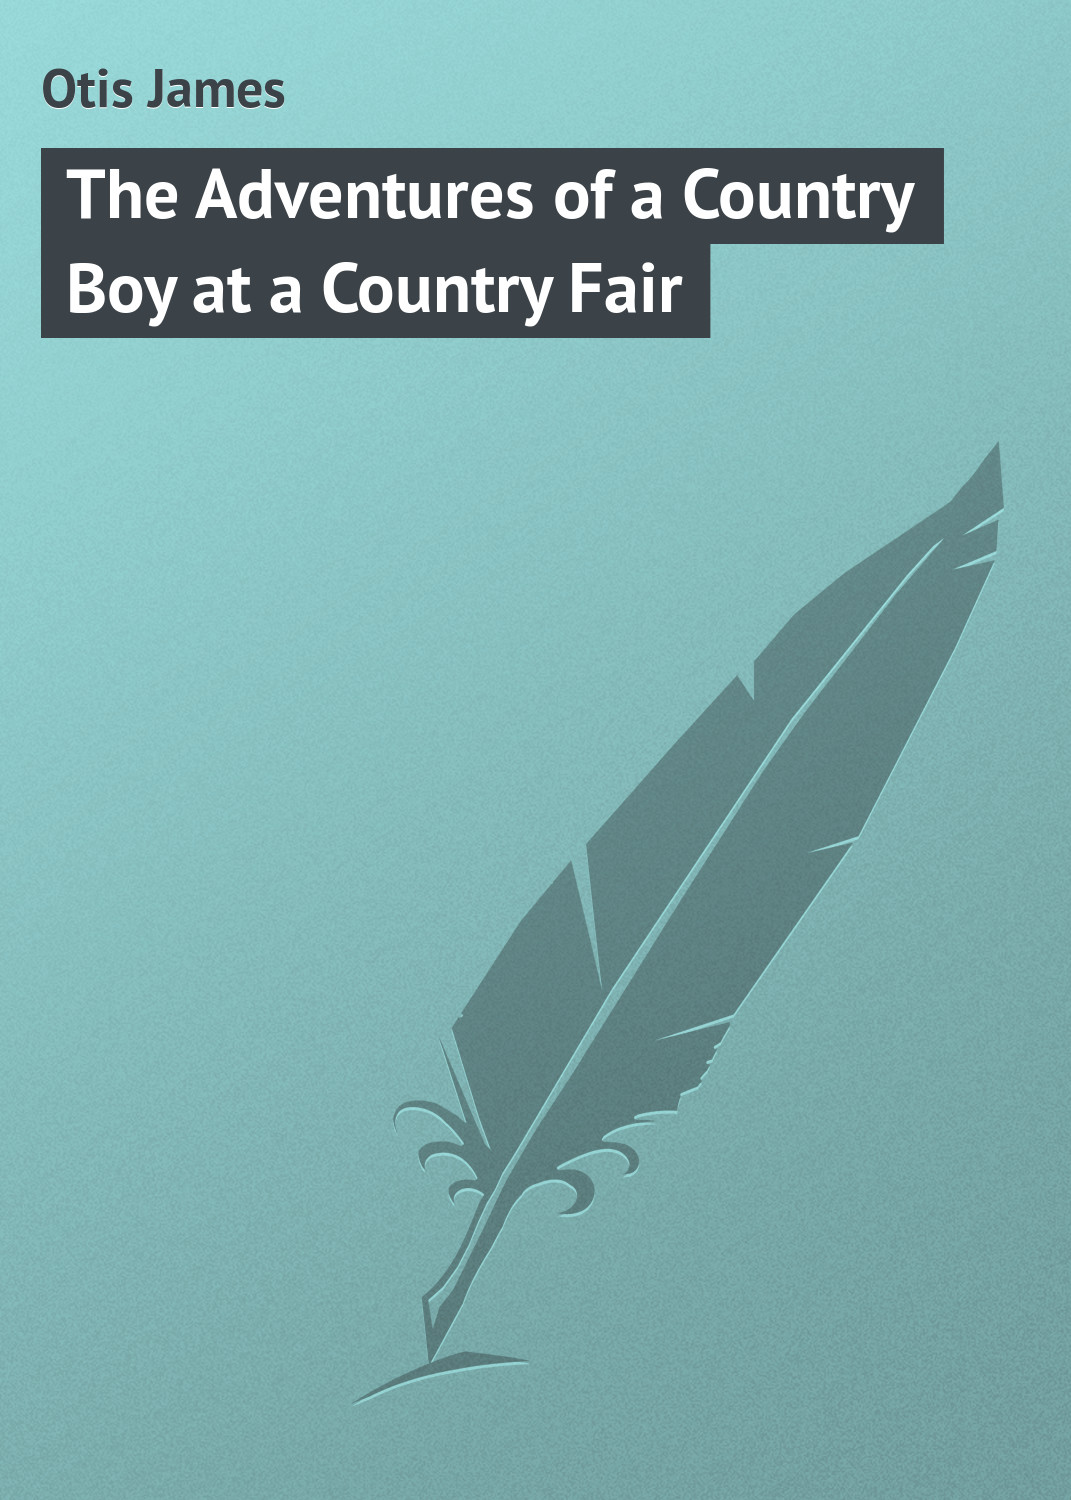 Otis James The Adventures of a Country Boy at a Country Fair country pursuits